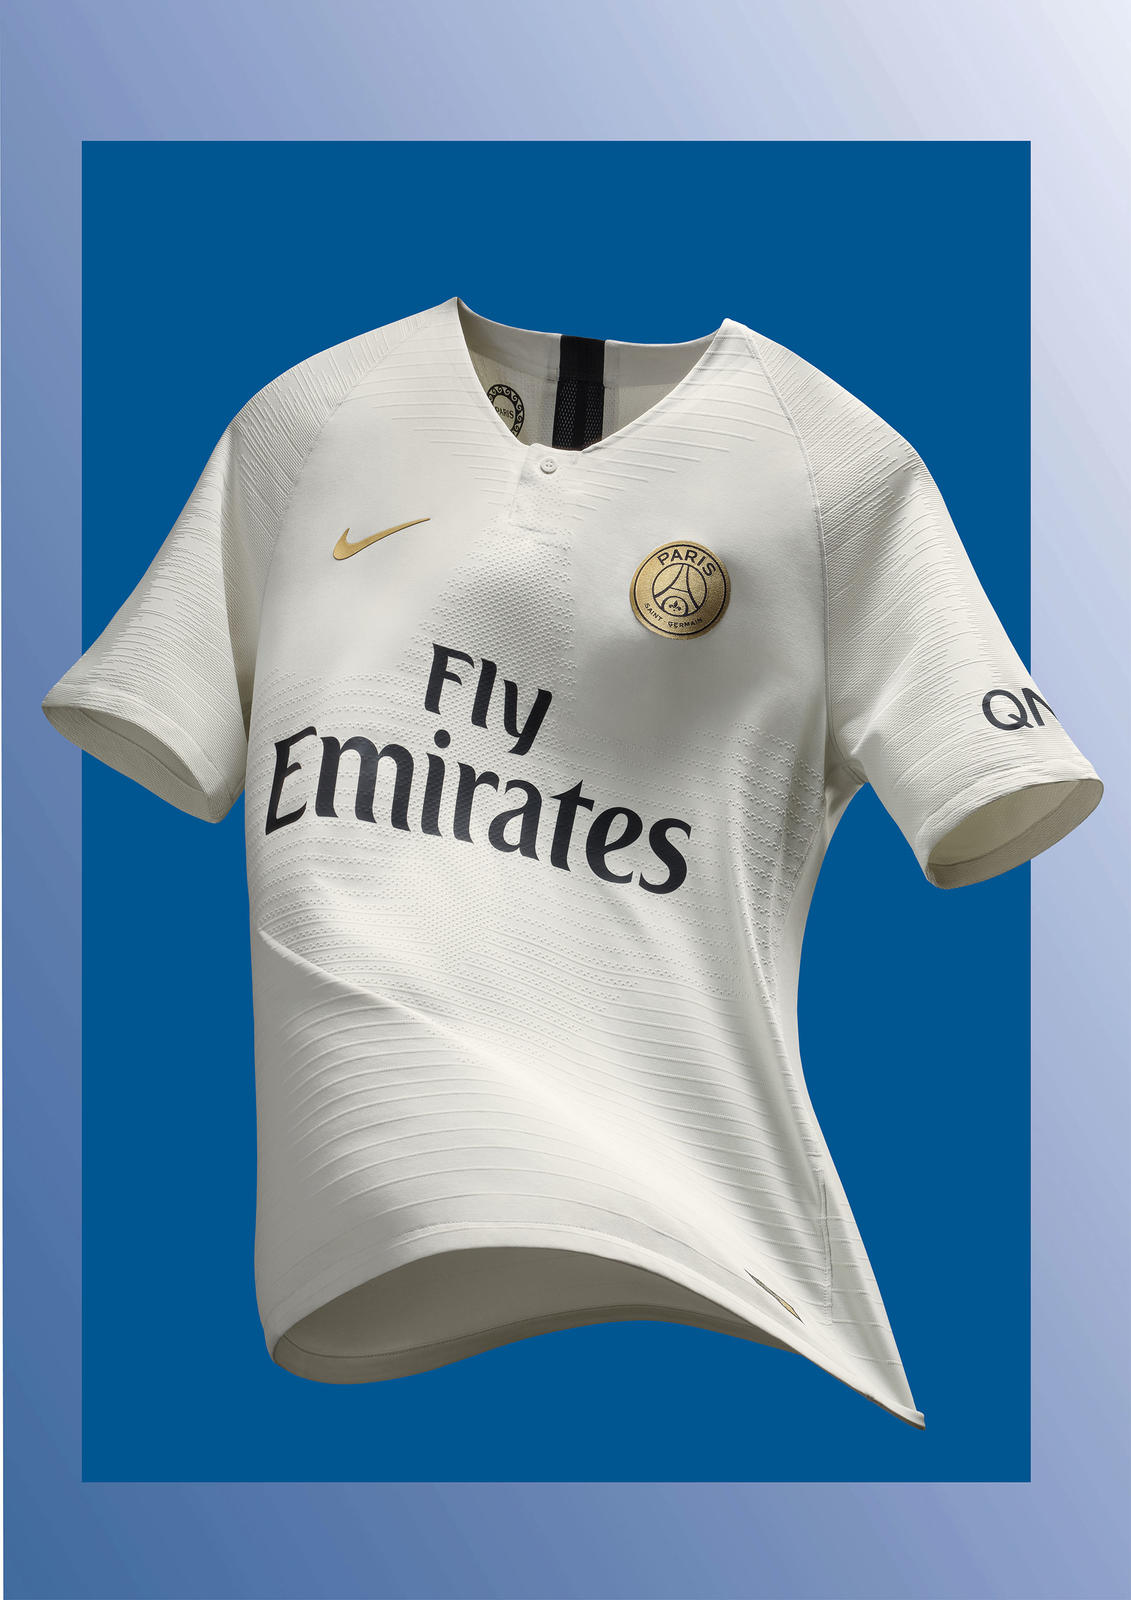 6b6a90241 ... Click to enlarge image paris saint germain 18 19 nike away kit g.jpg ...